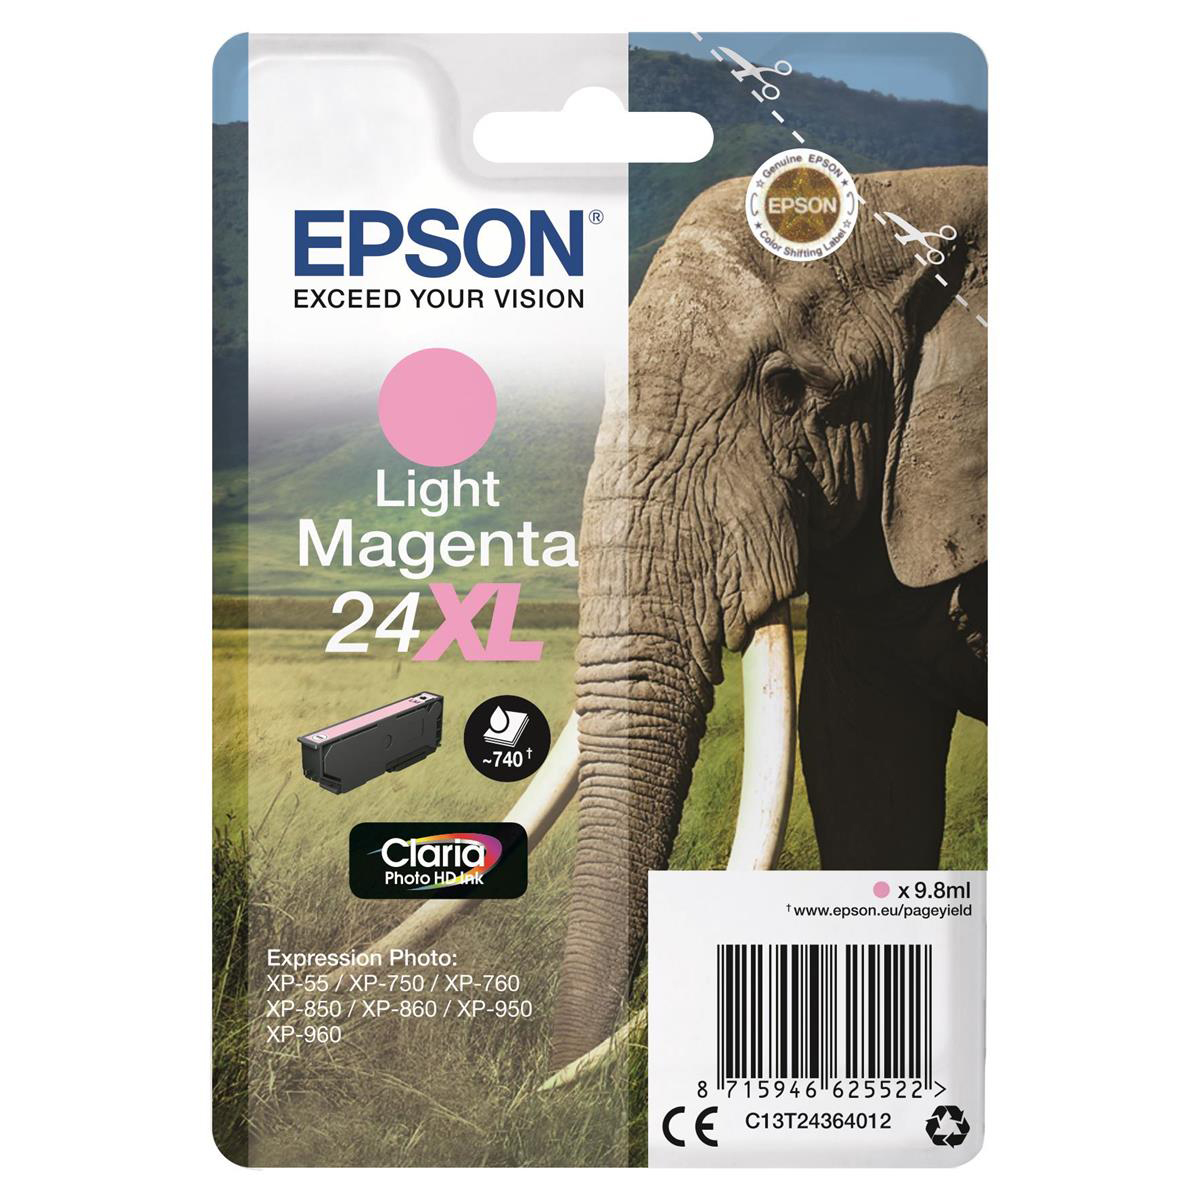 Epson 24XL Inkjet Cartridge Elephant High Yield 740pp 9.8ml Light Magenta Ref C13T24364012